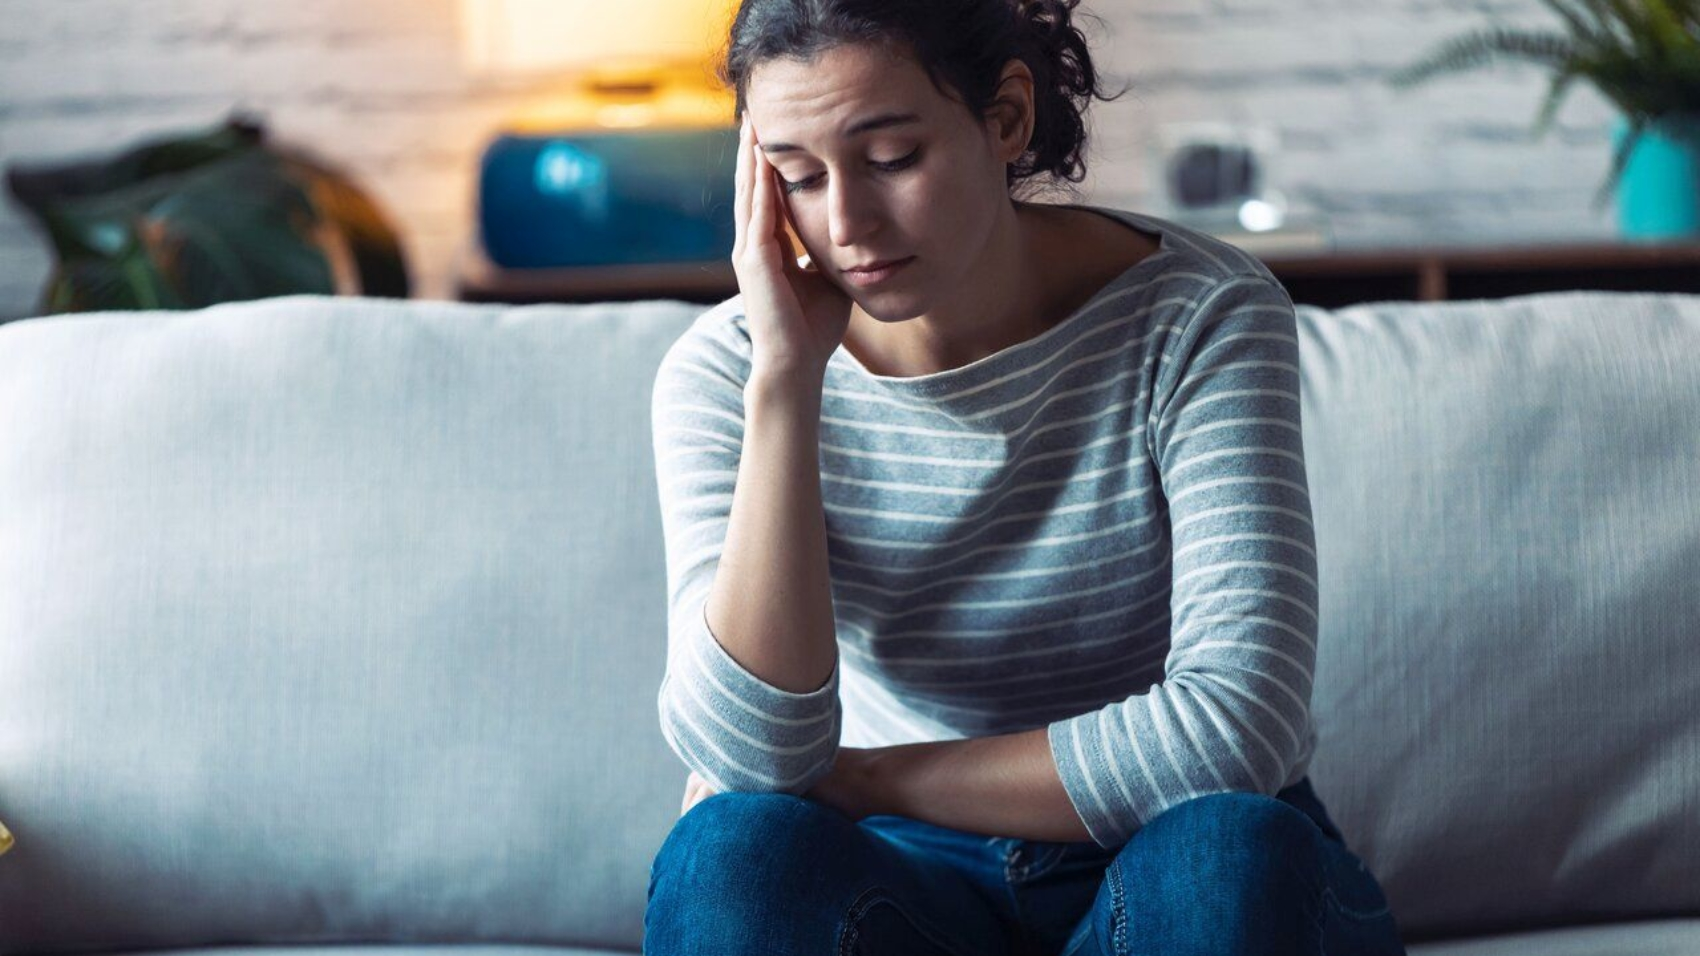 Shot of worried young woman thinking while sitting on sofa in the living room at home.